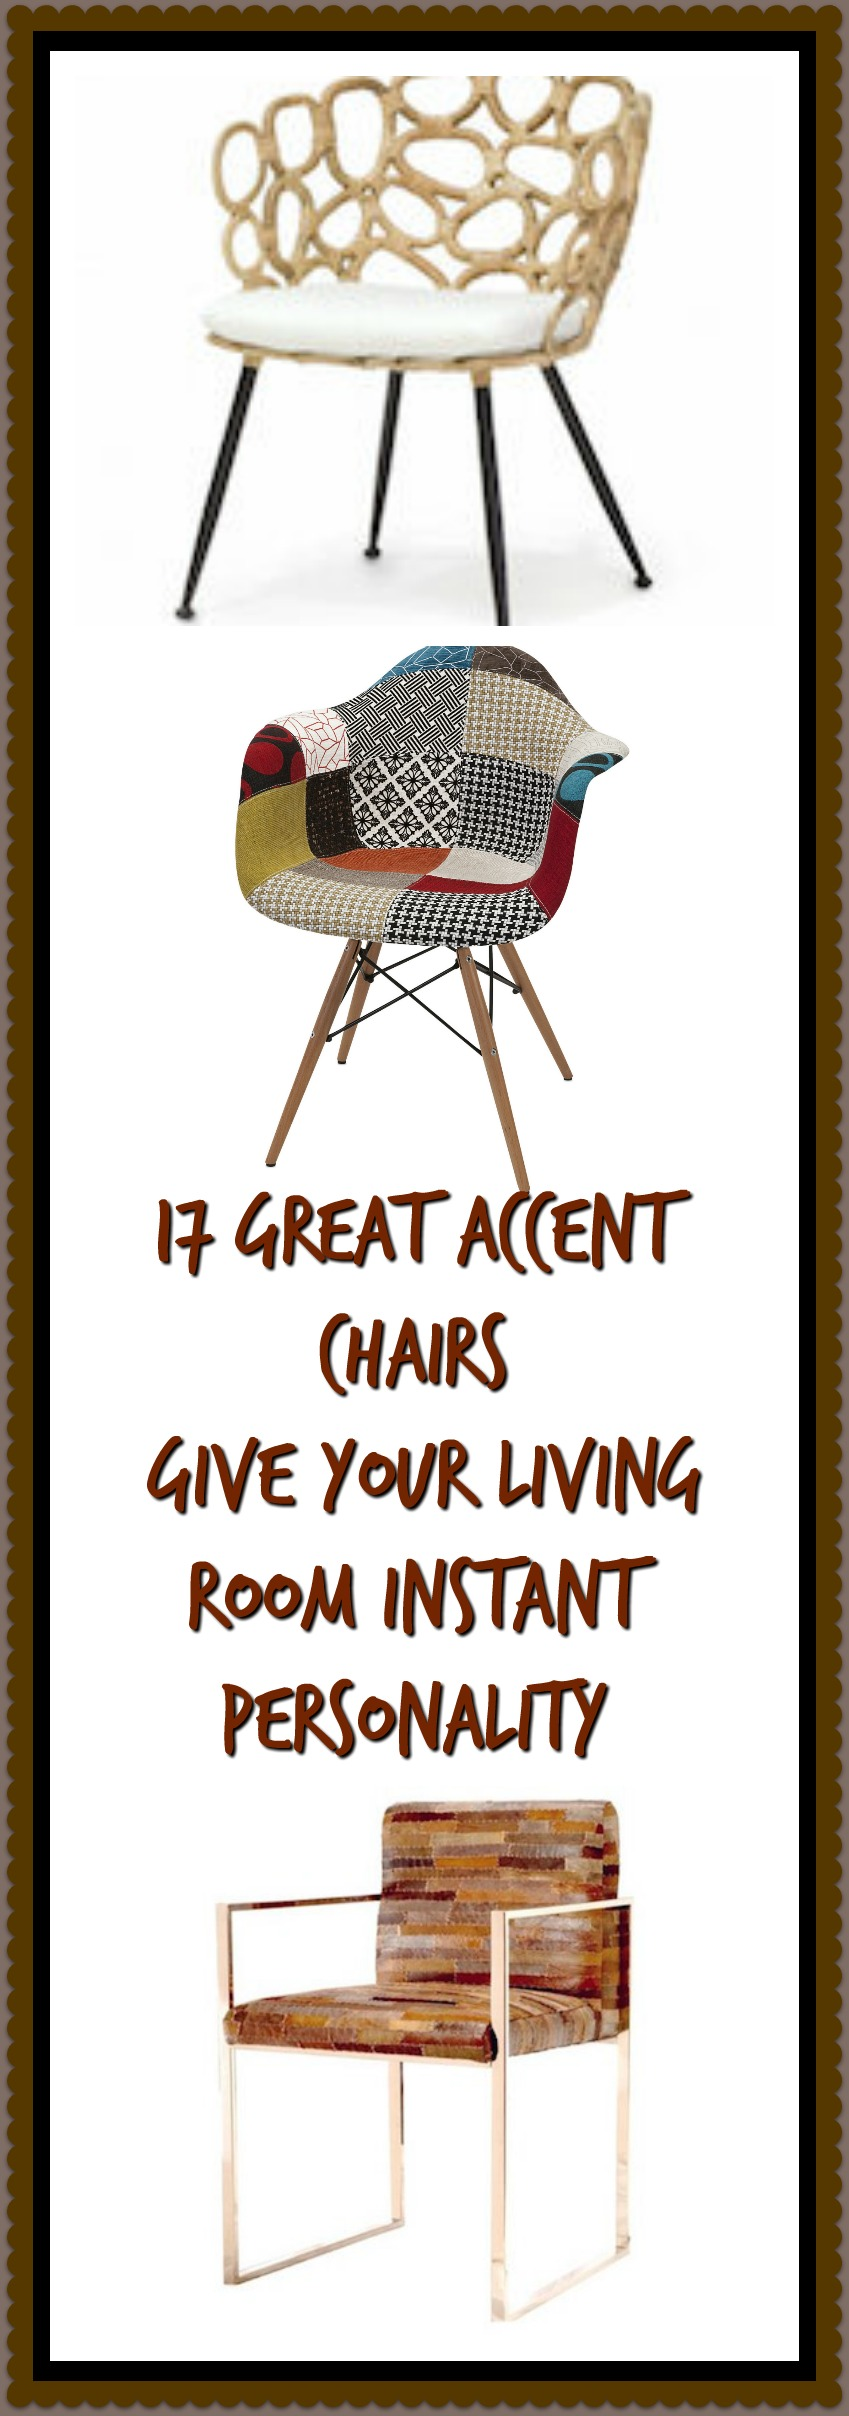 Accent Chairs from DeliciousPerspective.com